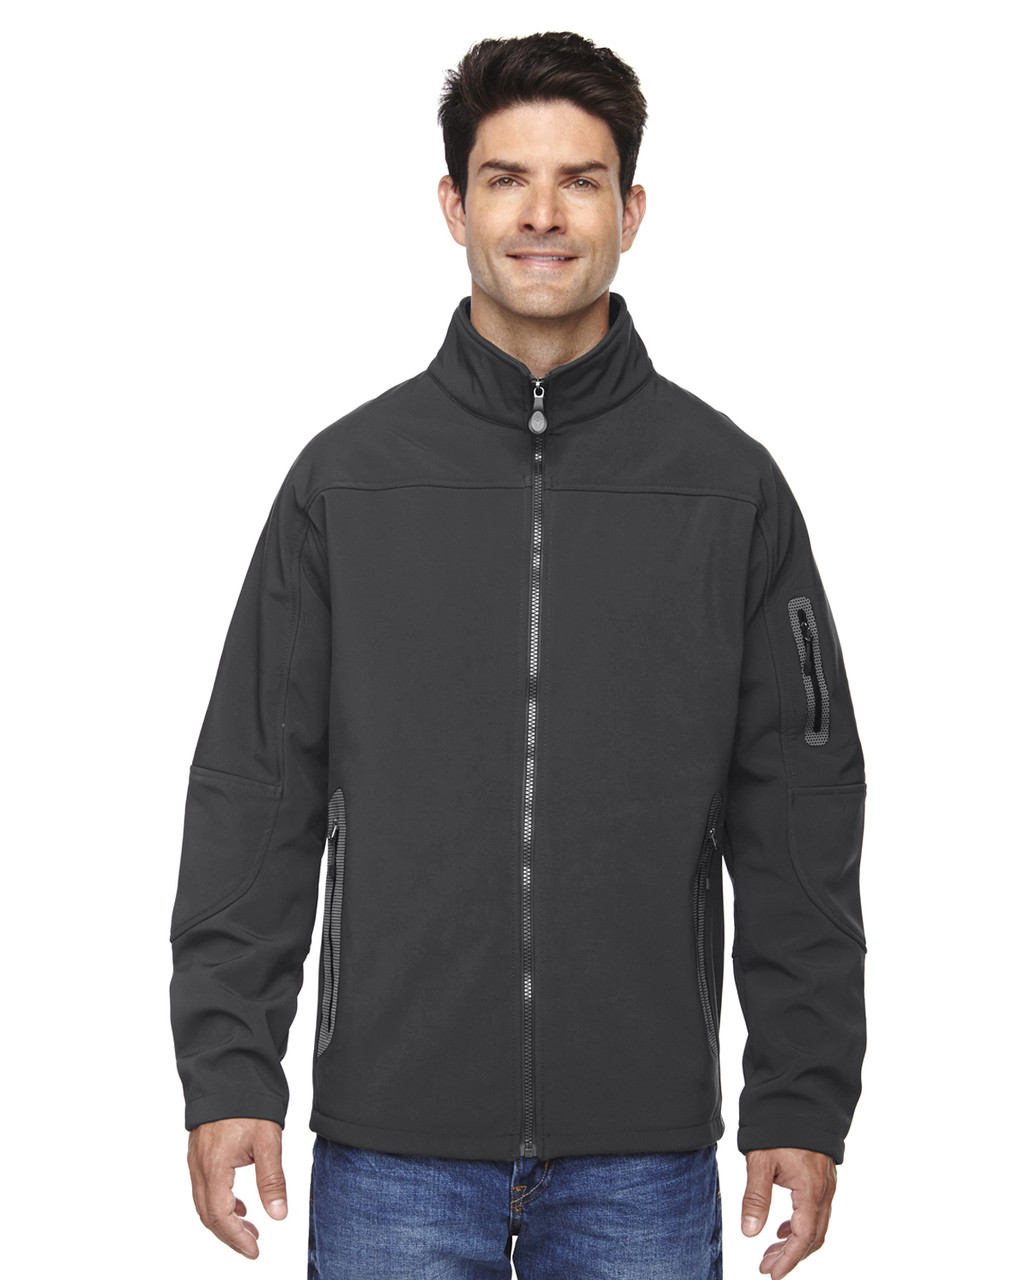 Graphite - 88138 North End Men's Soft Shell Technical Jacket   Blankclothing.ca